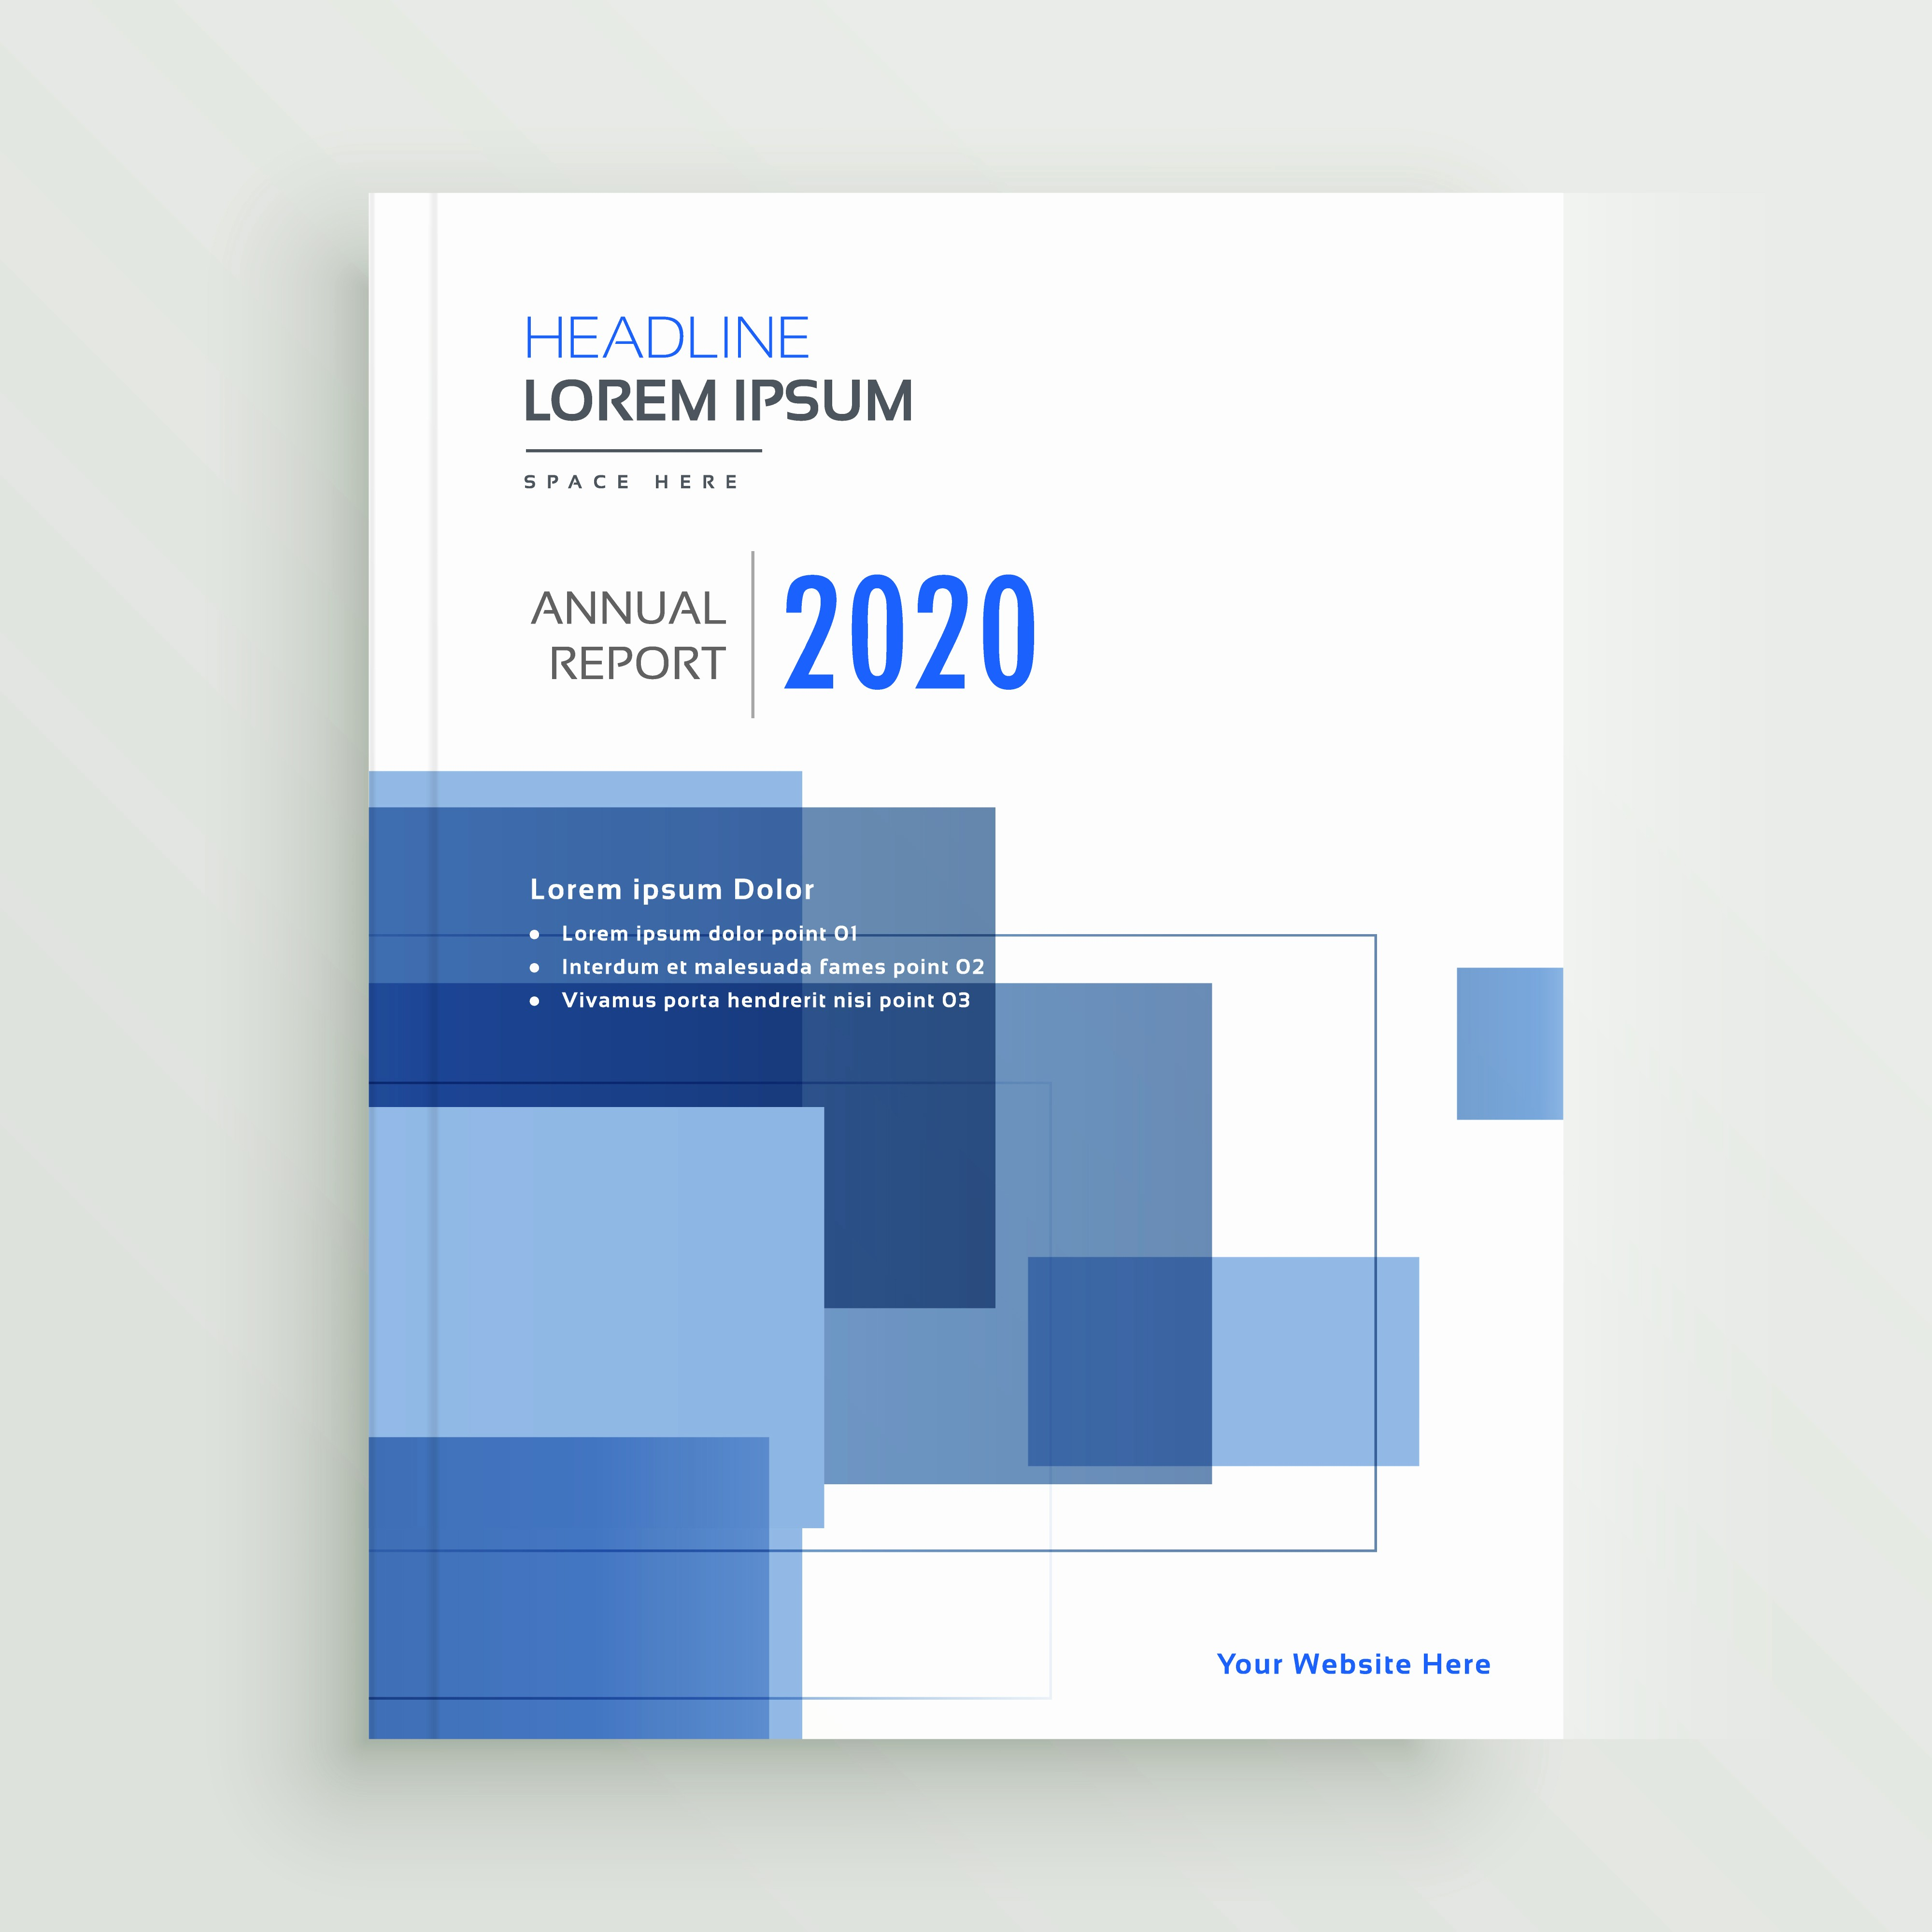 Consulting Report Template Microsoft Word Unique Business Annual Report Brochure Template Design with Blue